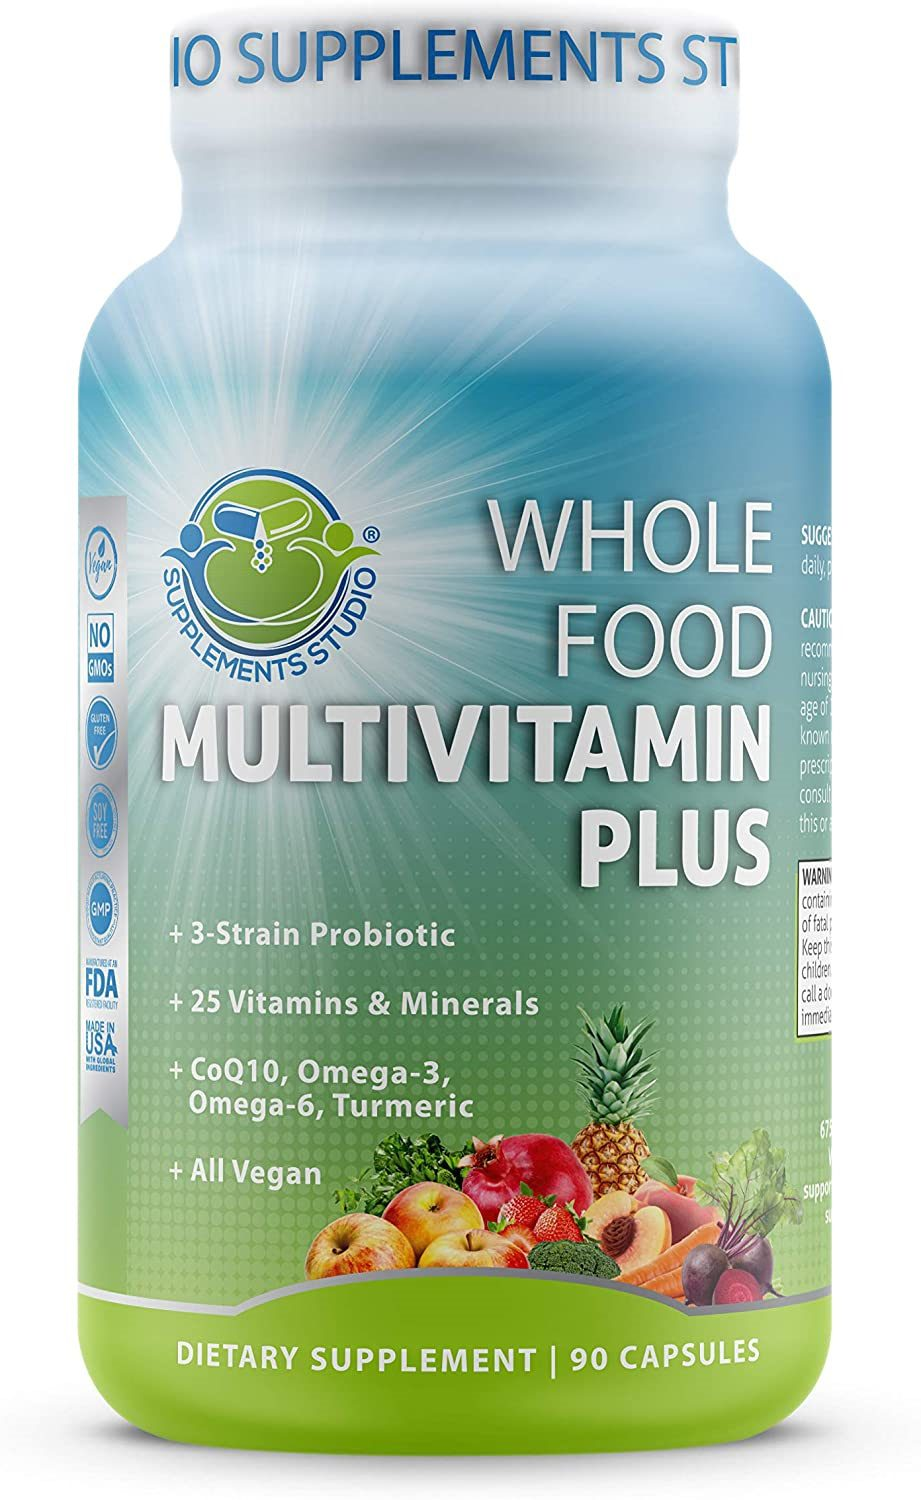 Whole Food Multivitamin Plus - Vegan - Daily Multivitamin for Men and Women